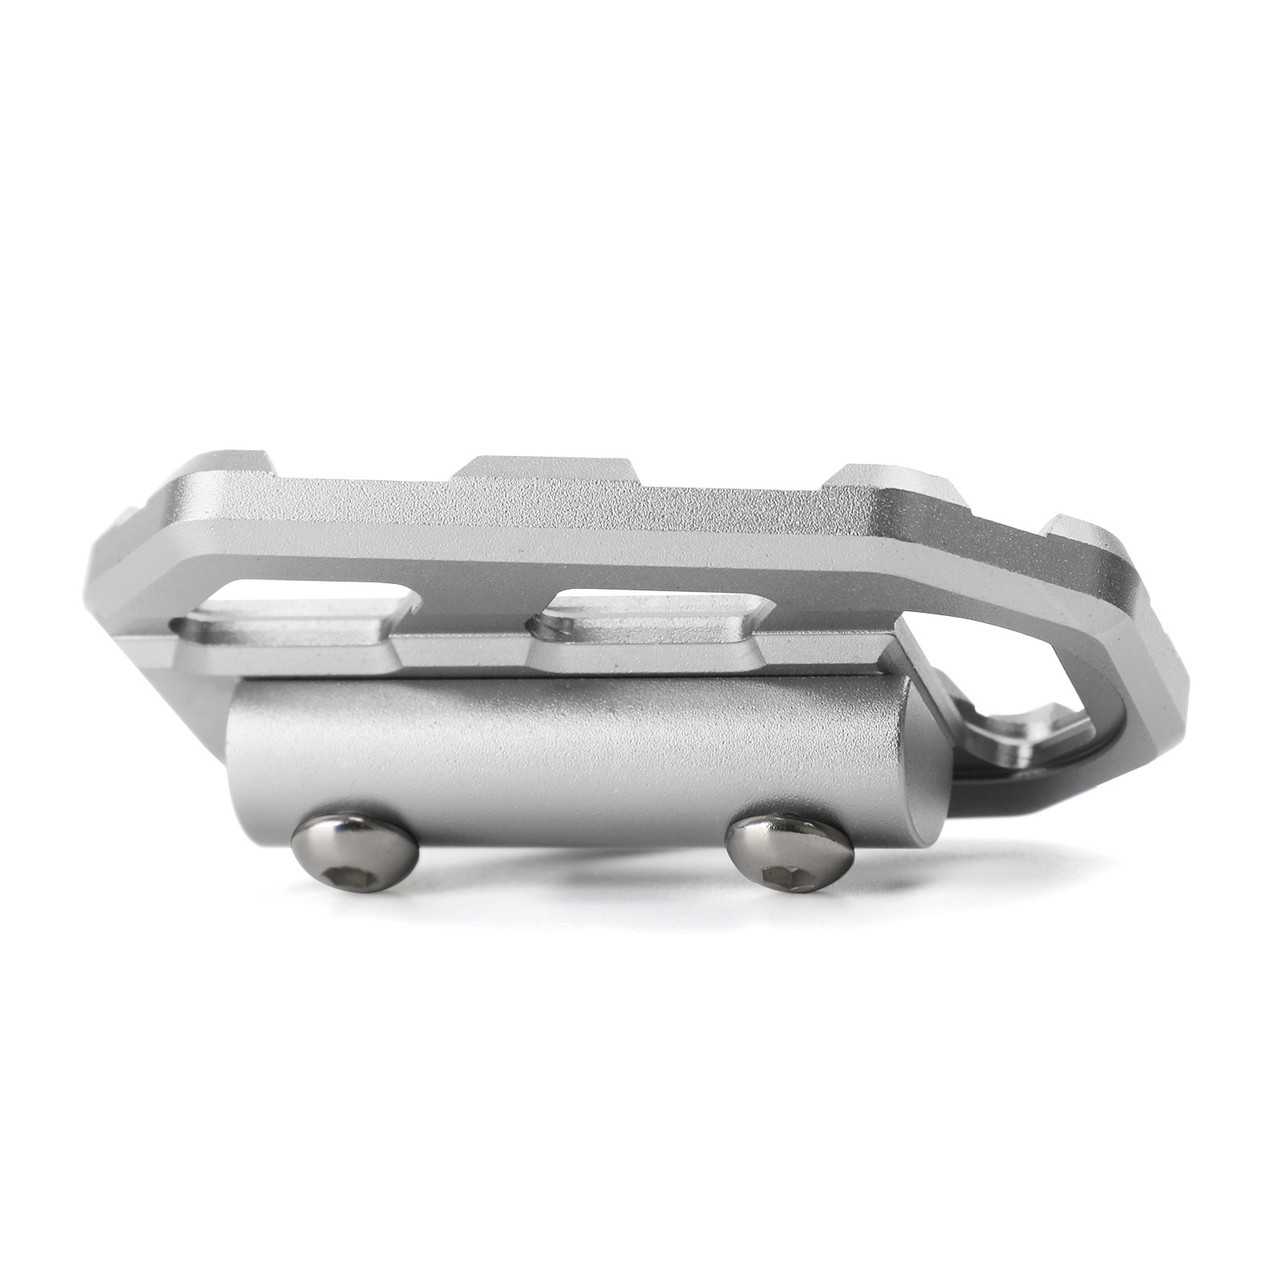 Foot Pedals Footpegs For BMW G310GS 17-19 S1000XR 15-19 BMW R1200GS (Adv.)13-19 Silver